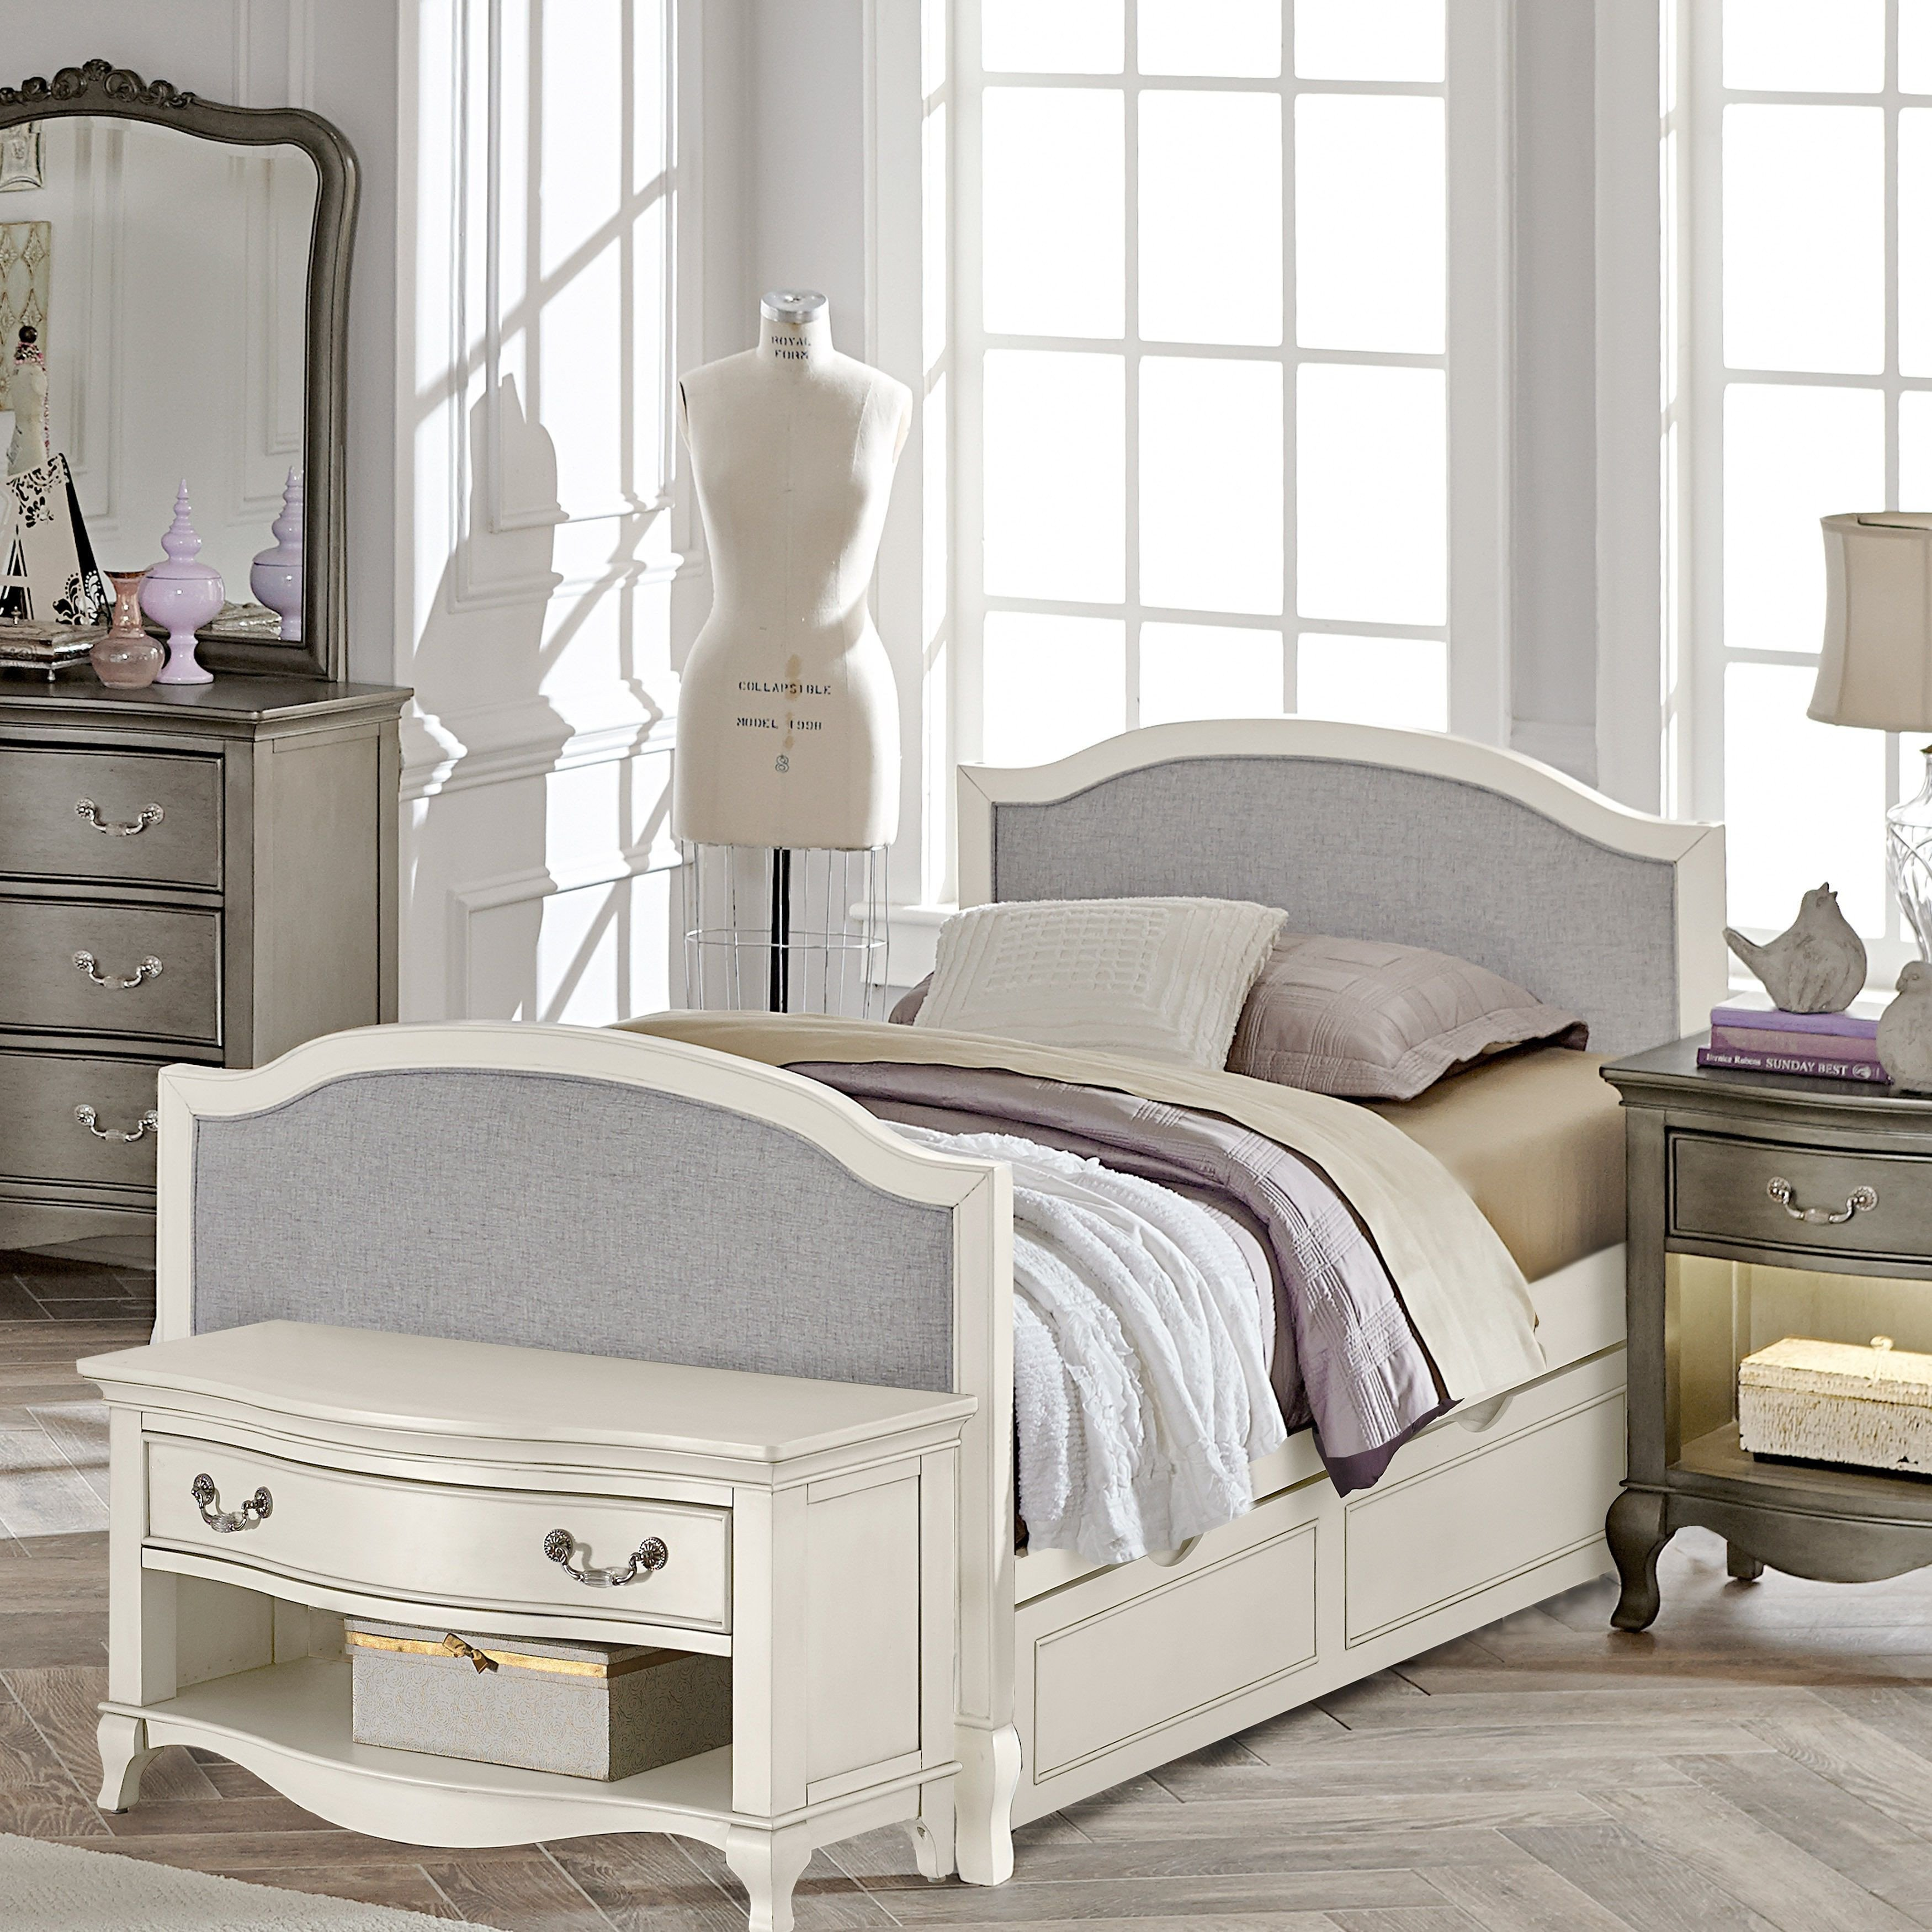 Kids Twin Bedroom Set New Kensington Victoria Antique White Twin Size Upholstered